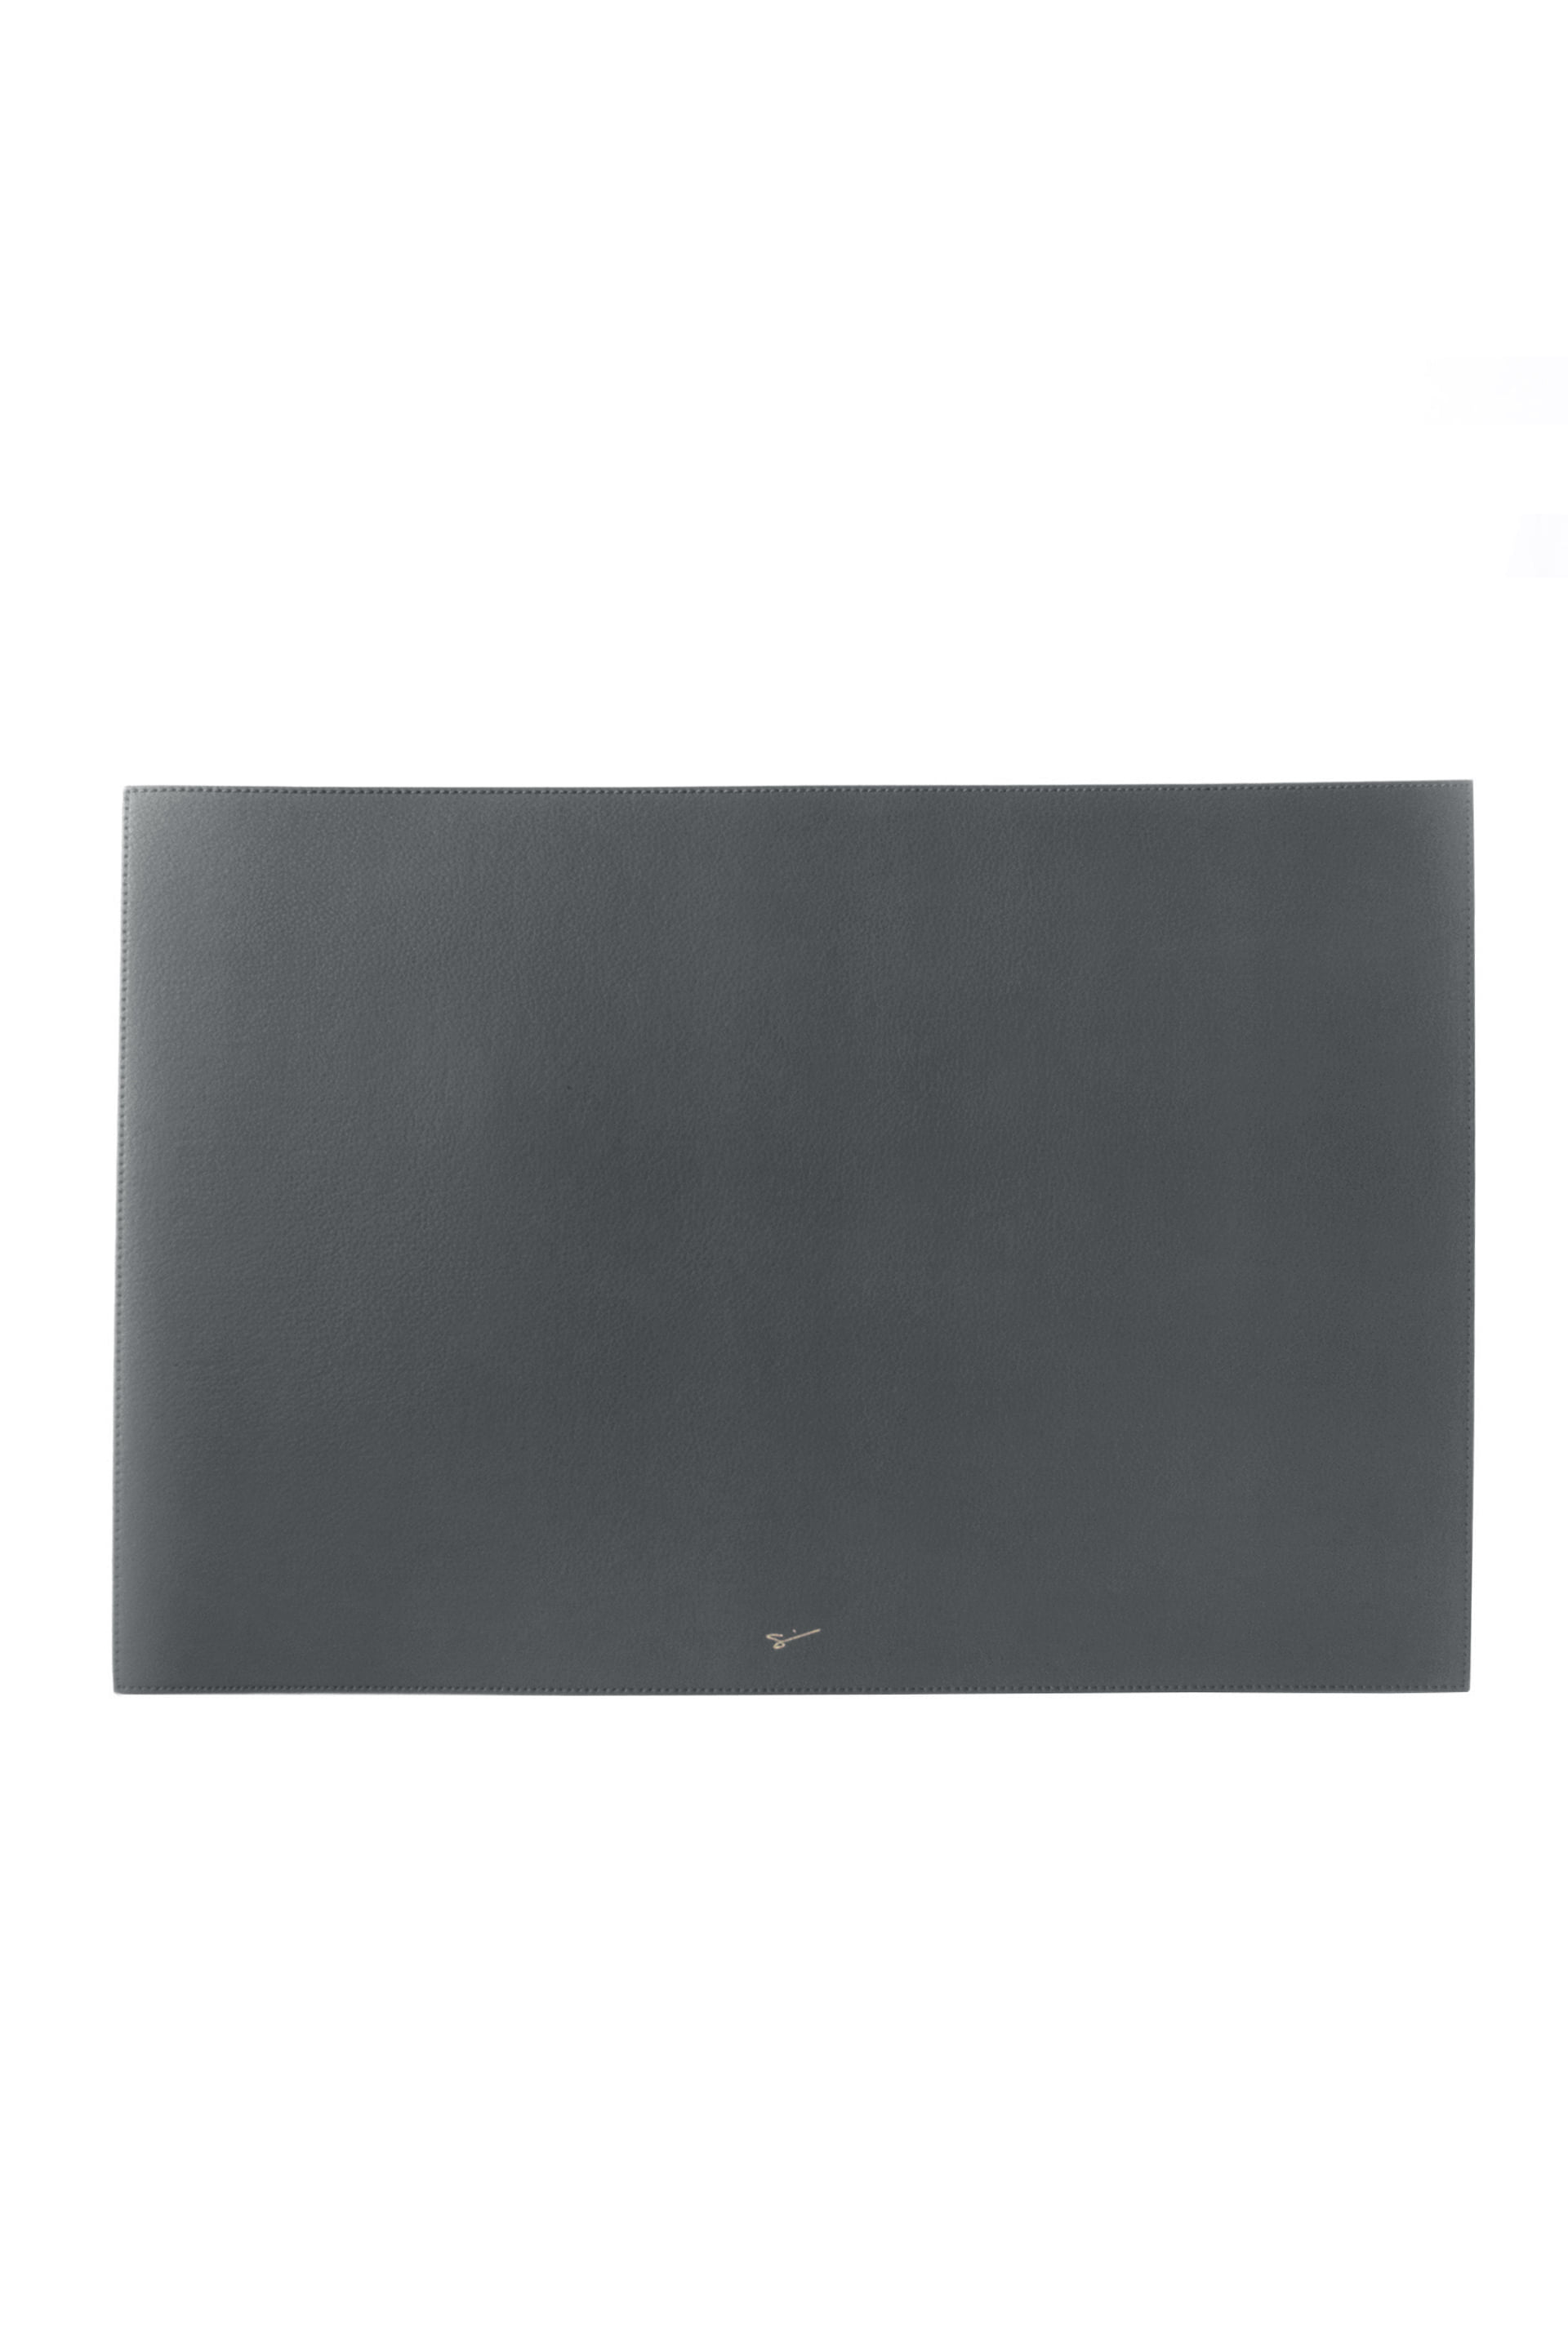 DESK PAD 21 Dark Grey